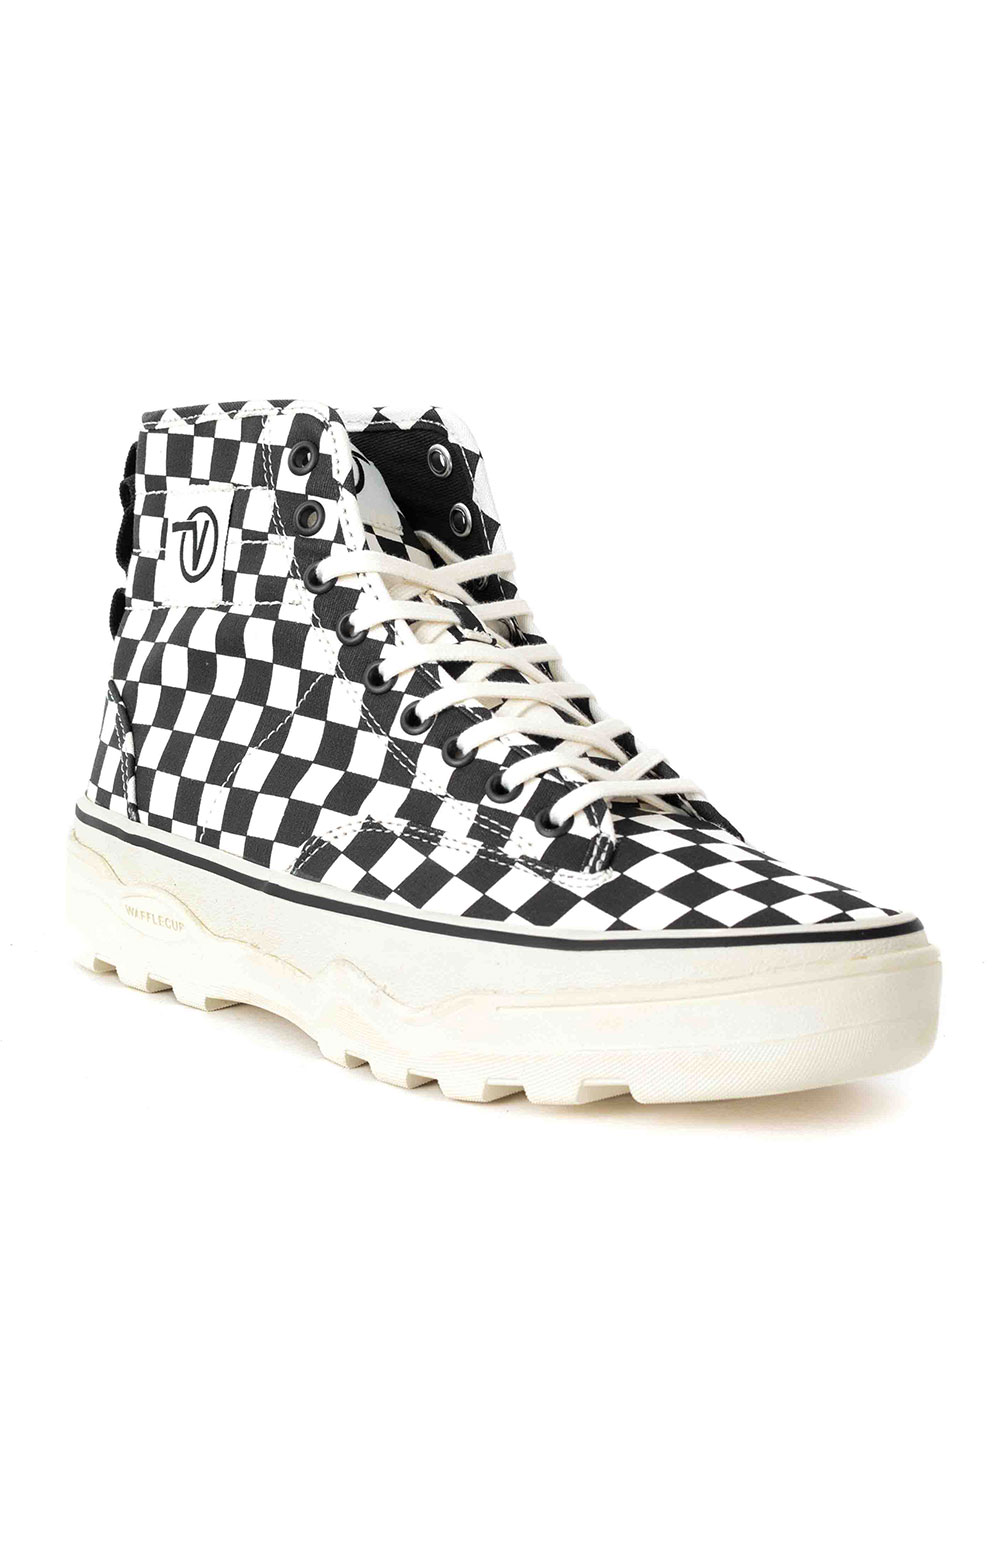 (4P3kTUY) Canvas Sentry WC Shoe - Checkerboard 3